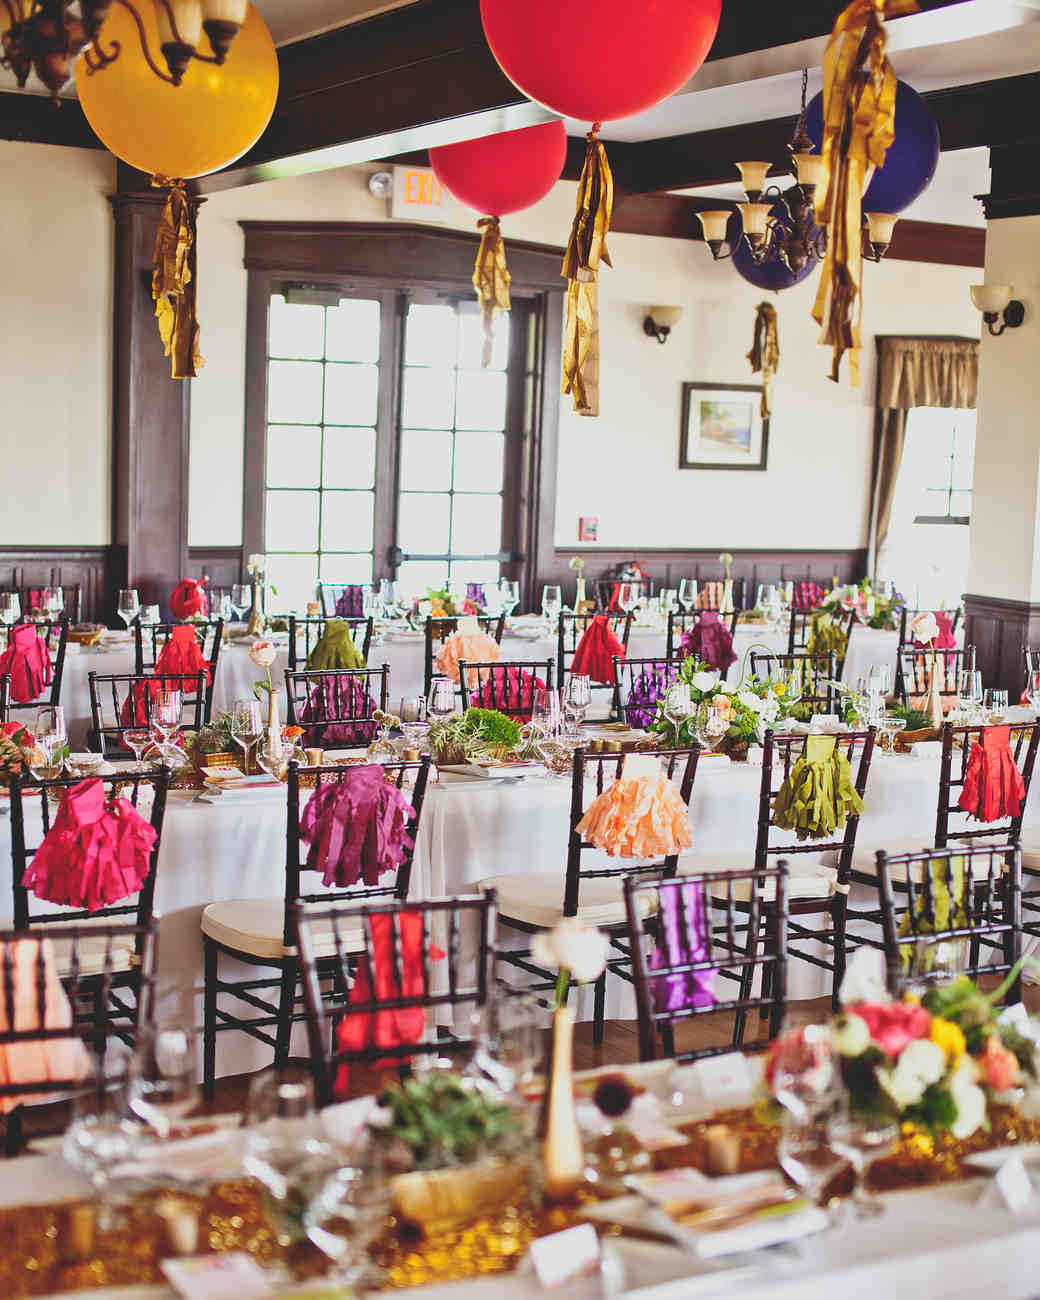 Colorful and Festive Long Reception Tables